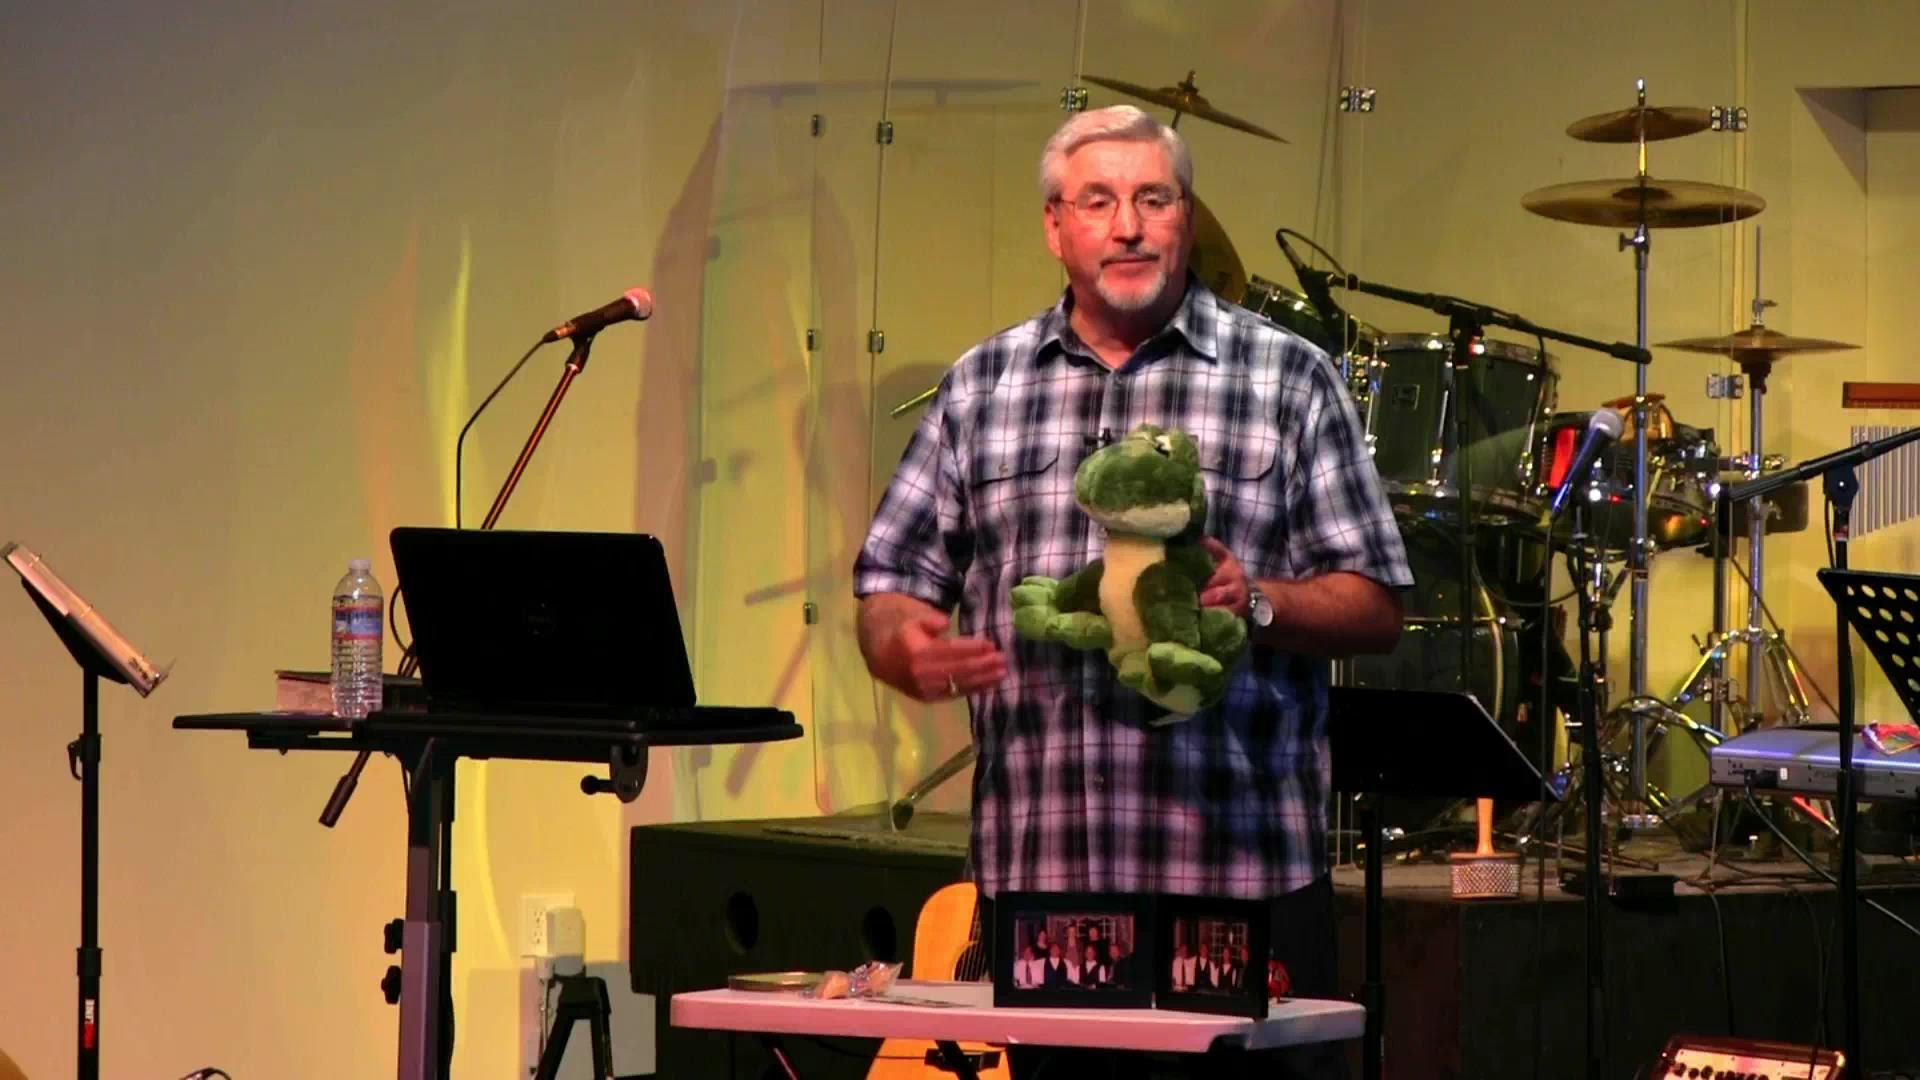 Object Lesson About Trusting God | The Bridge Church in Corona